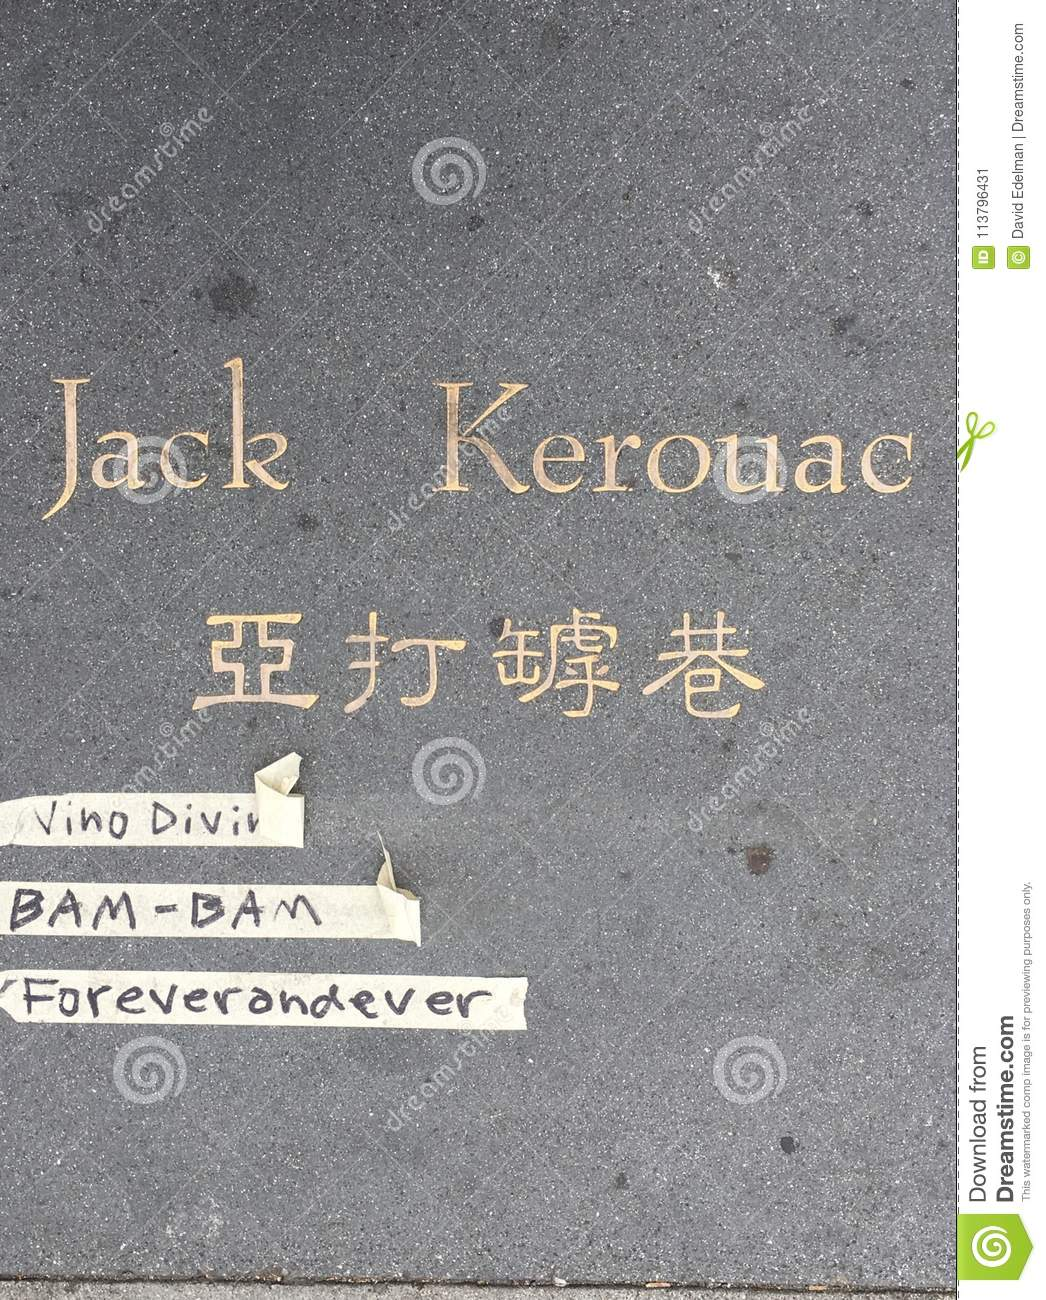 Jack Kerouac Alley, The Former Adler Alley  Editorial Photo